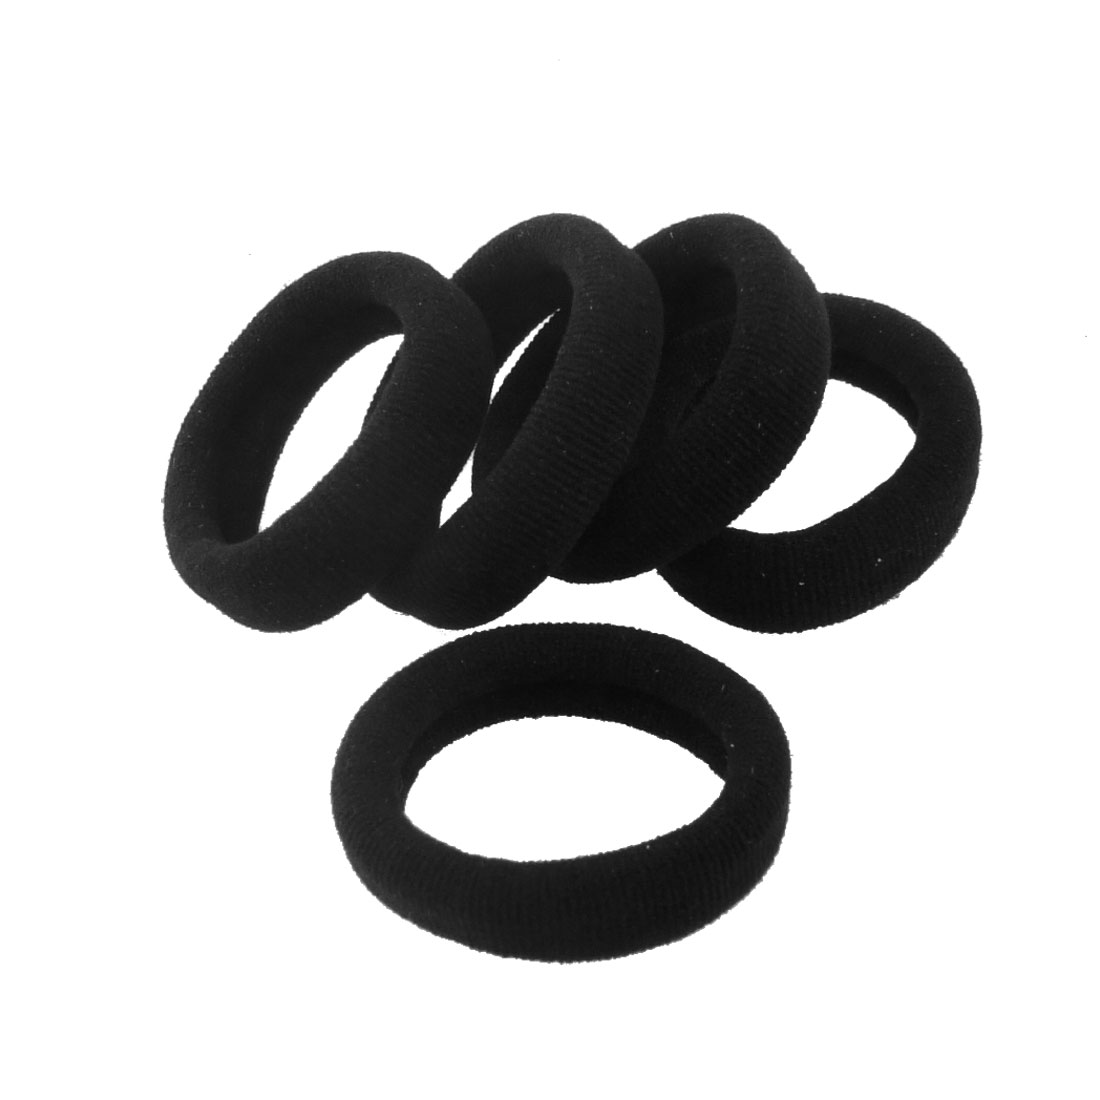 Unique Bargains 5 Pcs Stretchy Fabric Hair Ties Bands Ponytail Braid Holder Elastics Black